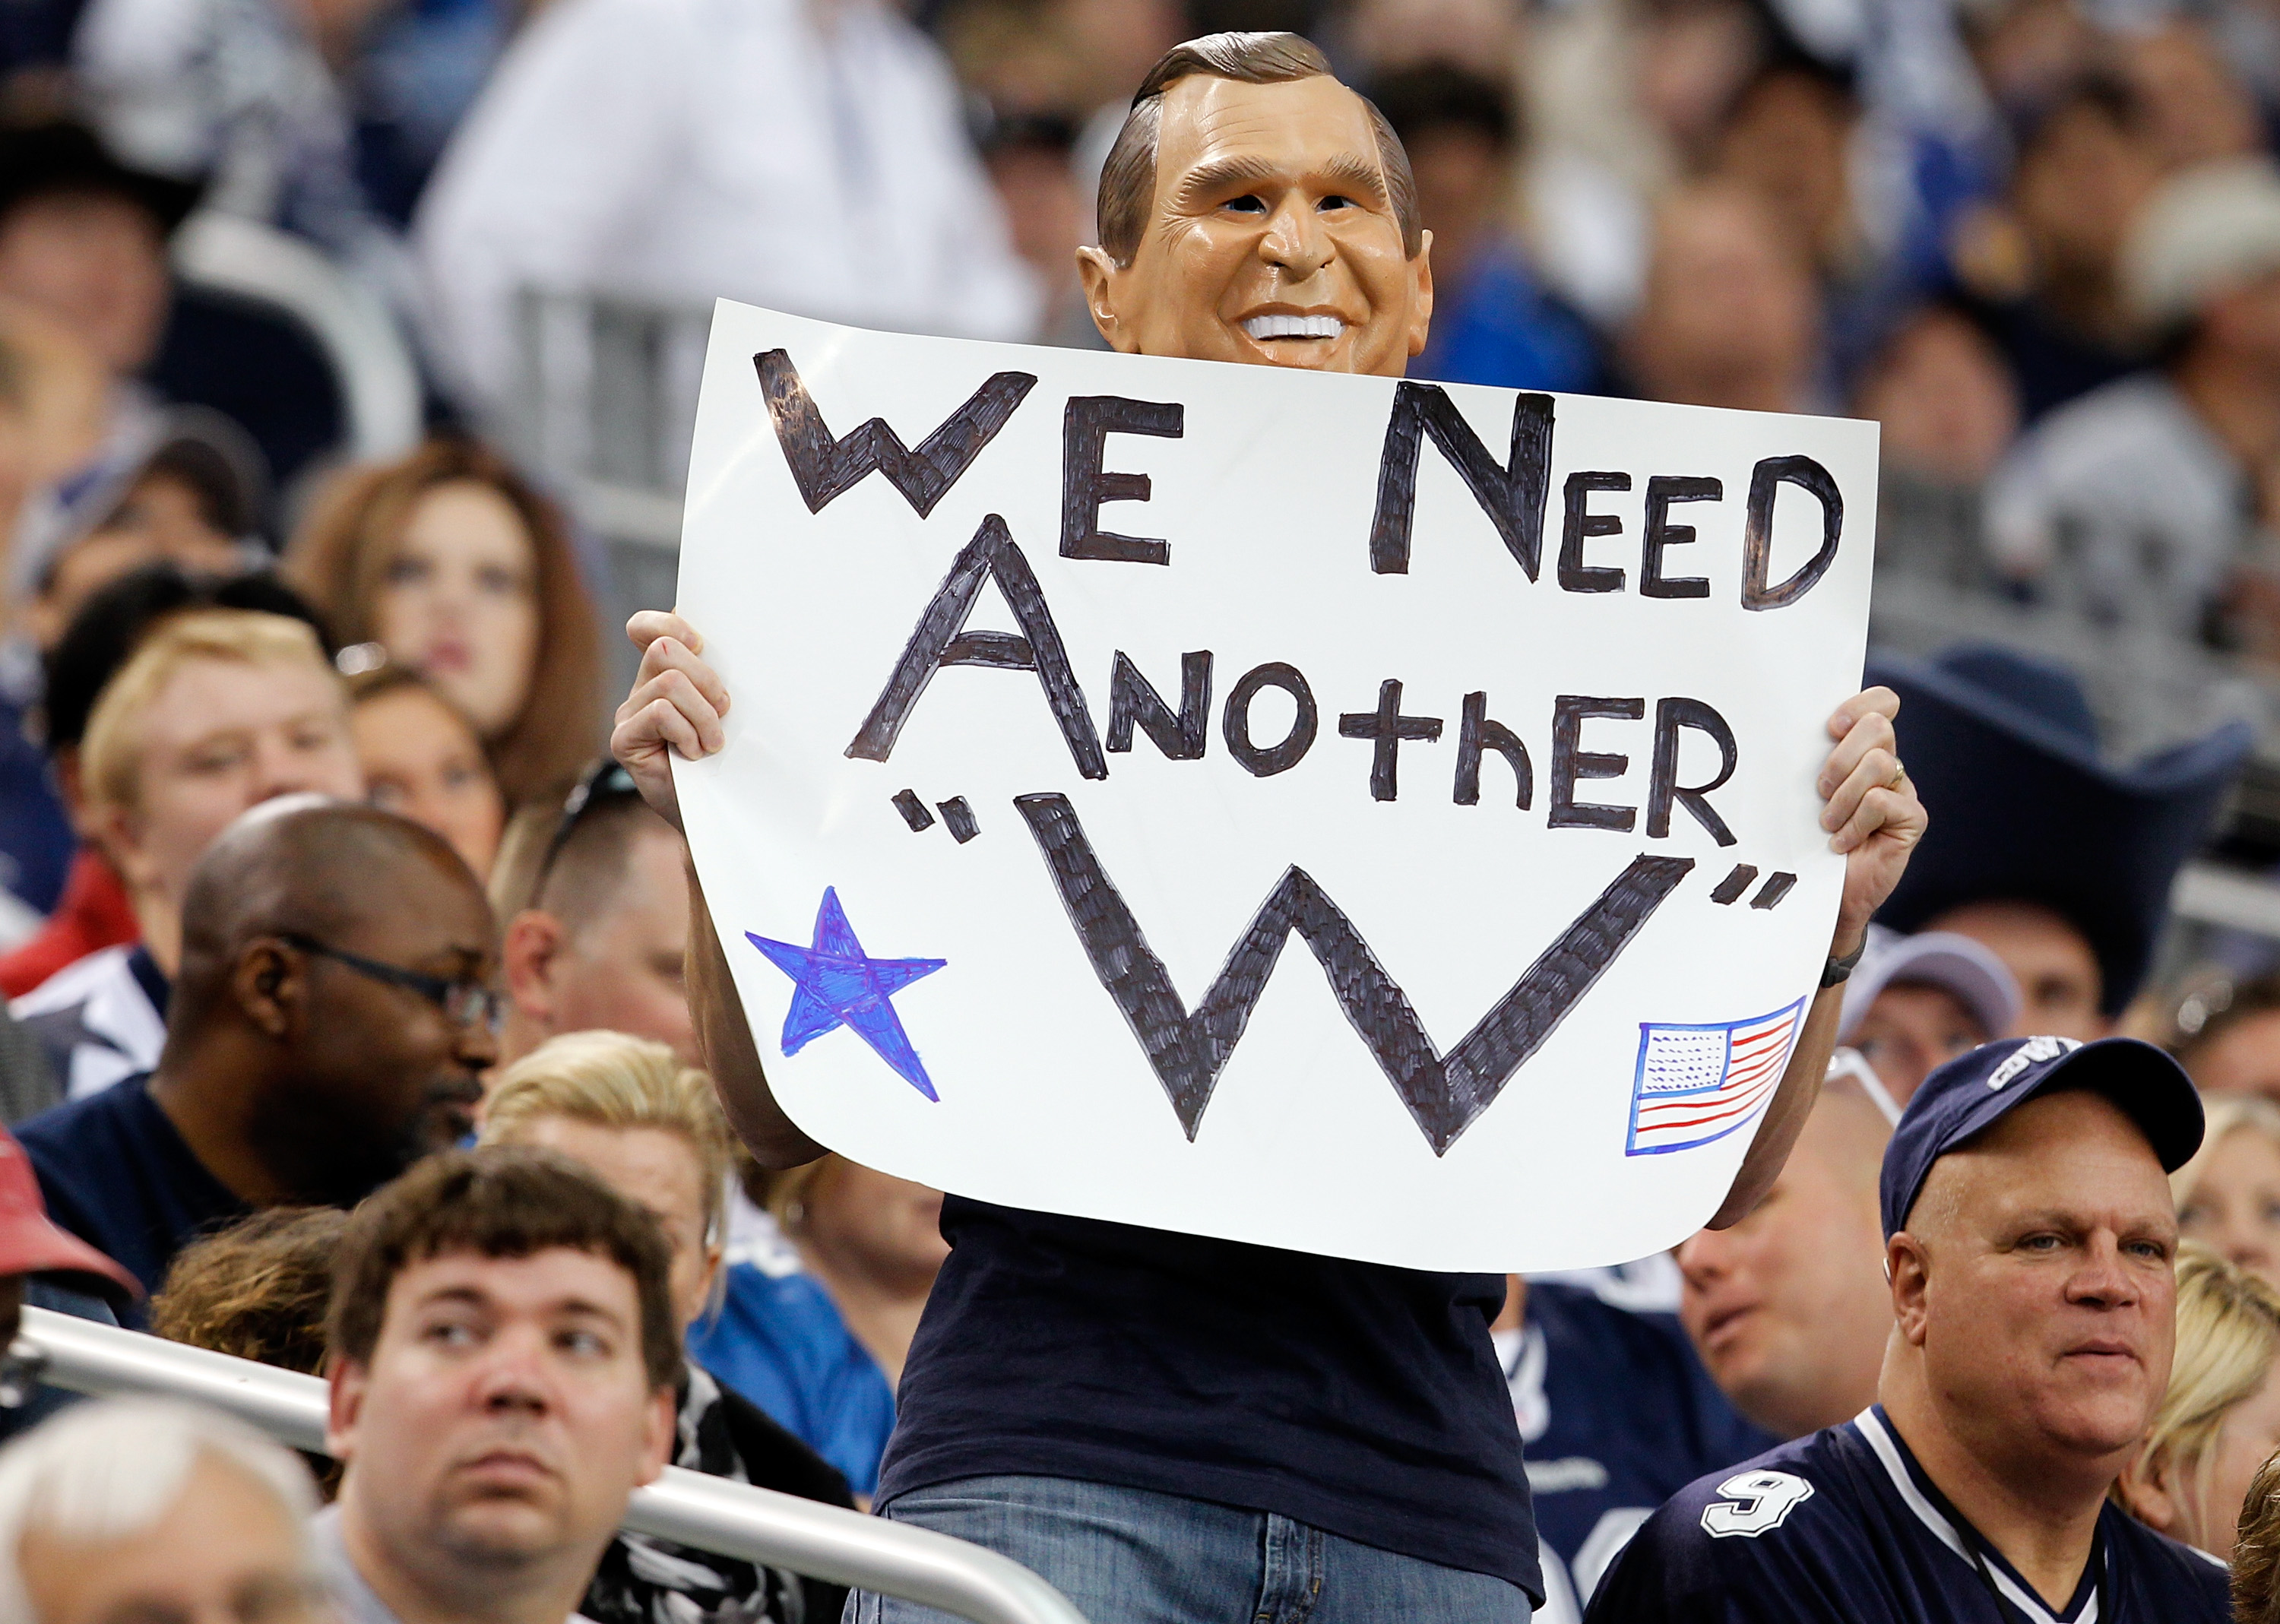 ARLINGTON, TX - NOVEMBER 21:  a Dallas Cowboys fan shows his support as the Dallas Cowboys take on the Detroit Lions at Cowboys Stadium on November 21, 2010 in Arlington, Texas.  The Cowboys beat the Lions 35-19.  (Photo by Tom Pennington/Getty Images)